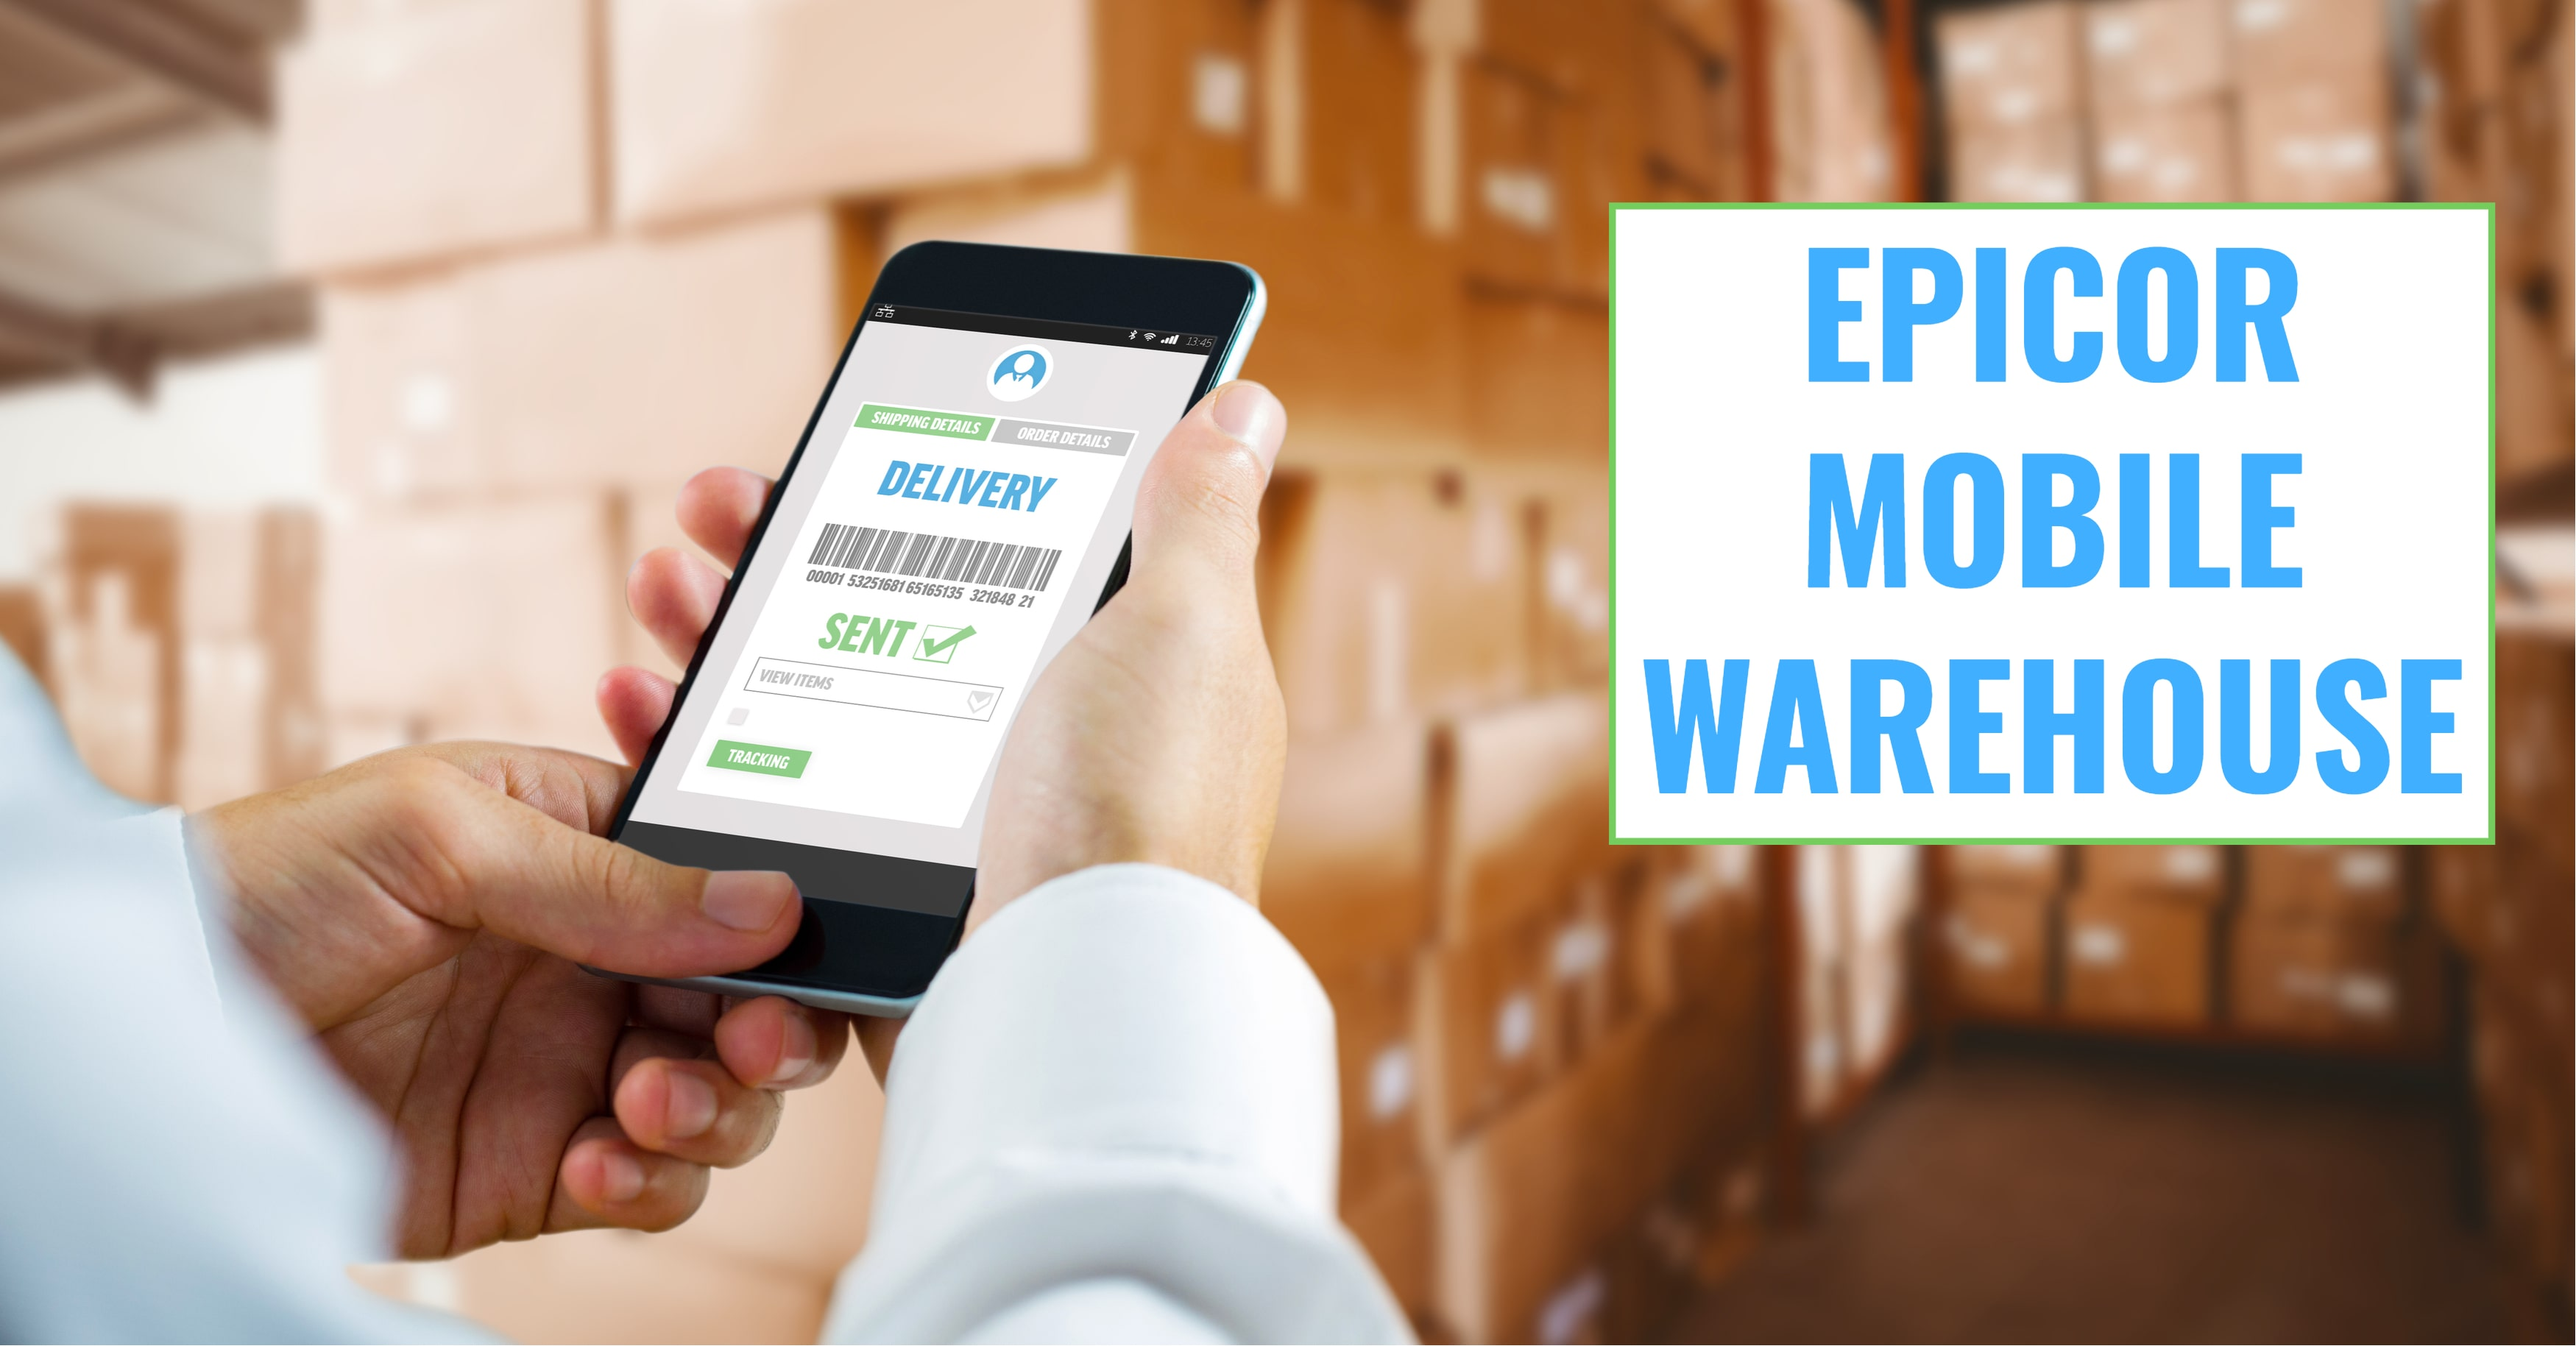 Quick Rundown of Epicor Mobile Warehouse